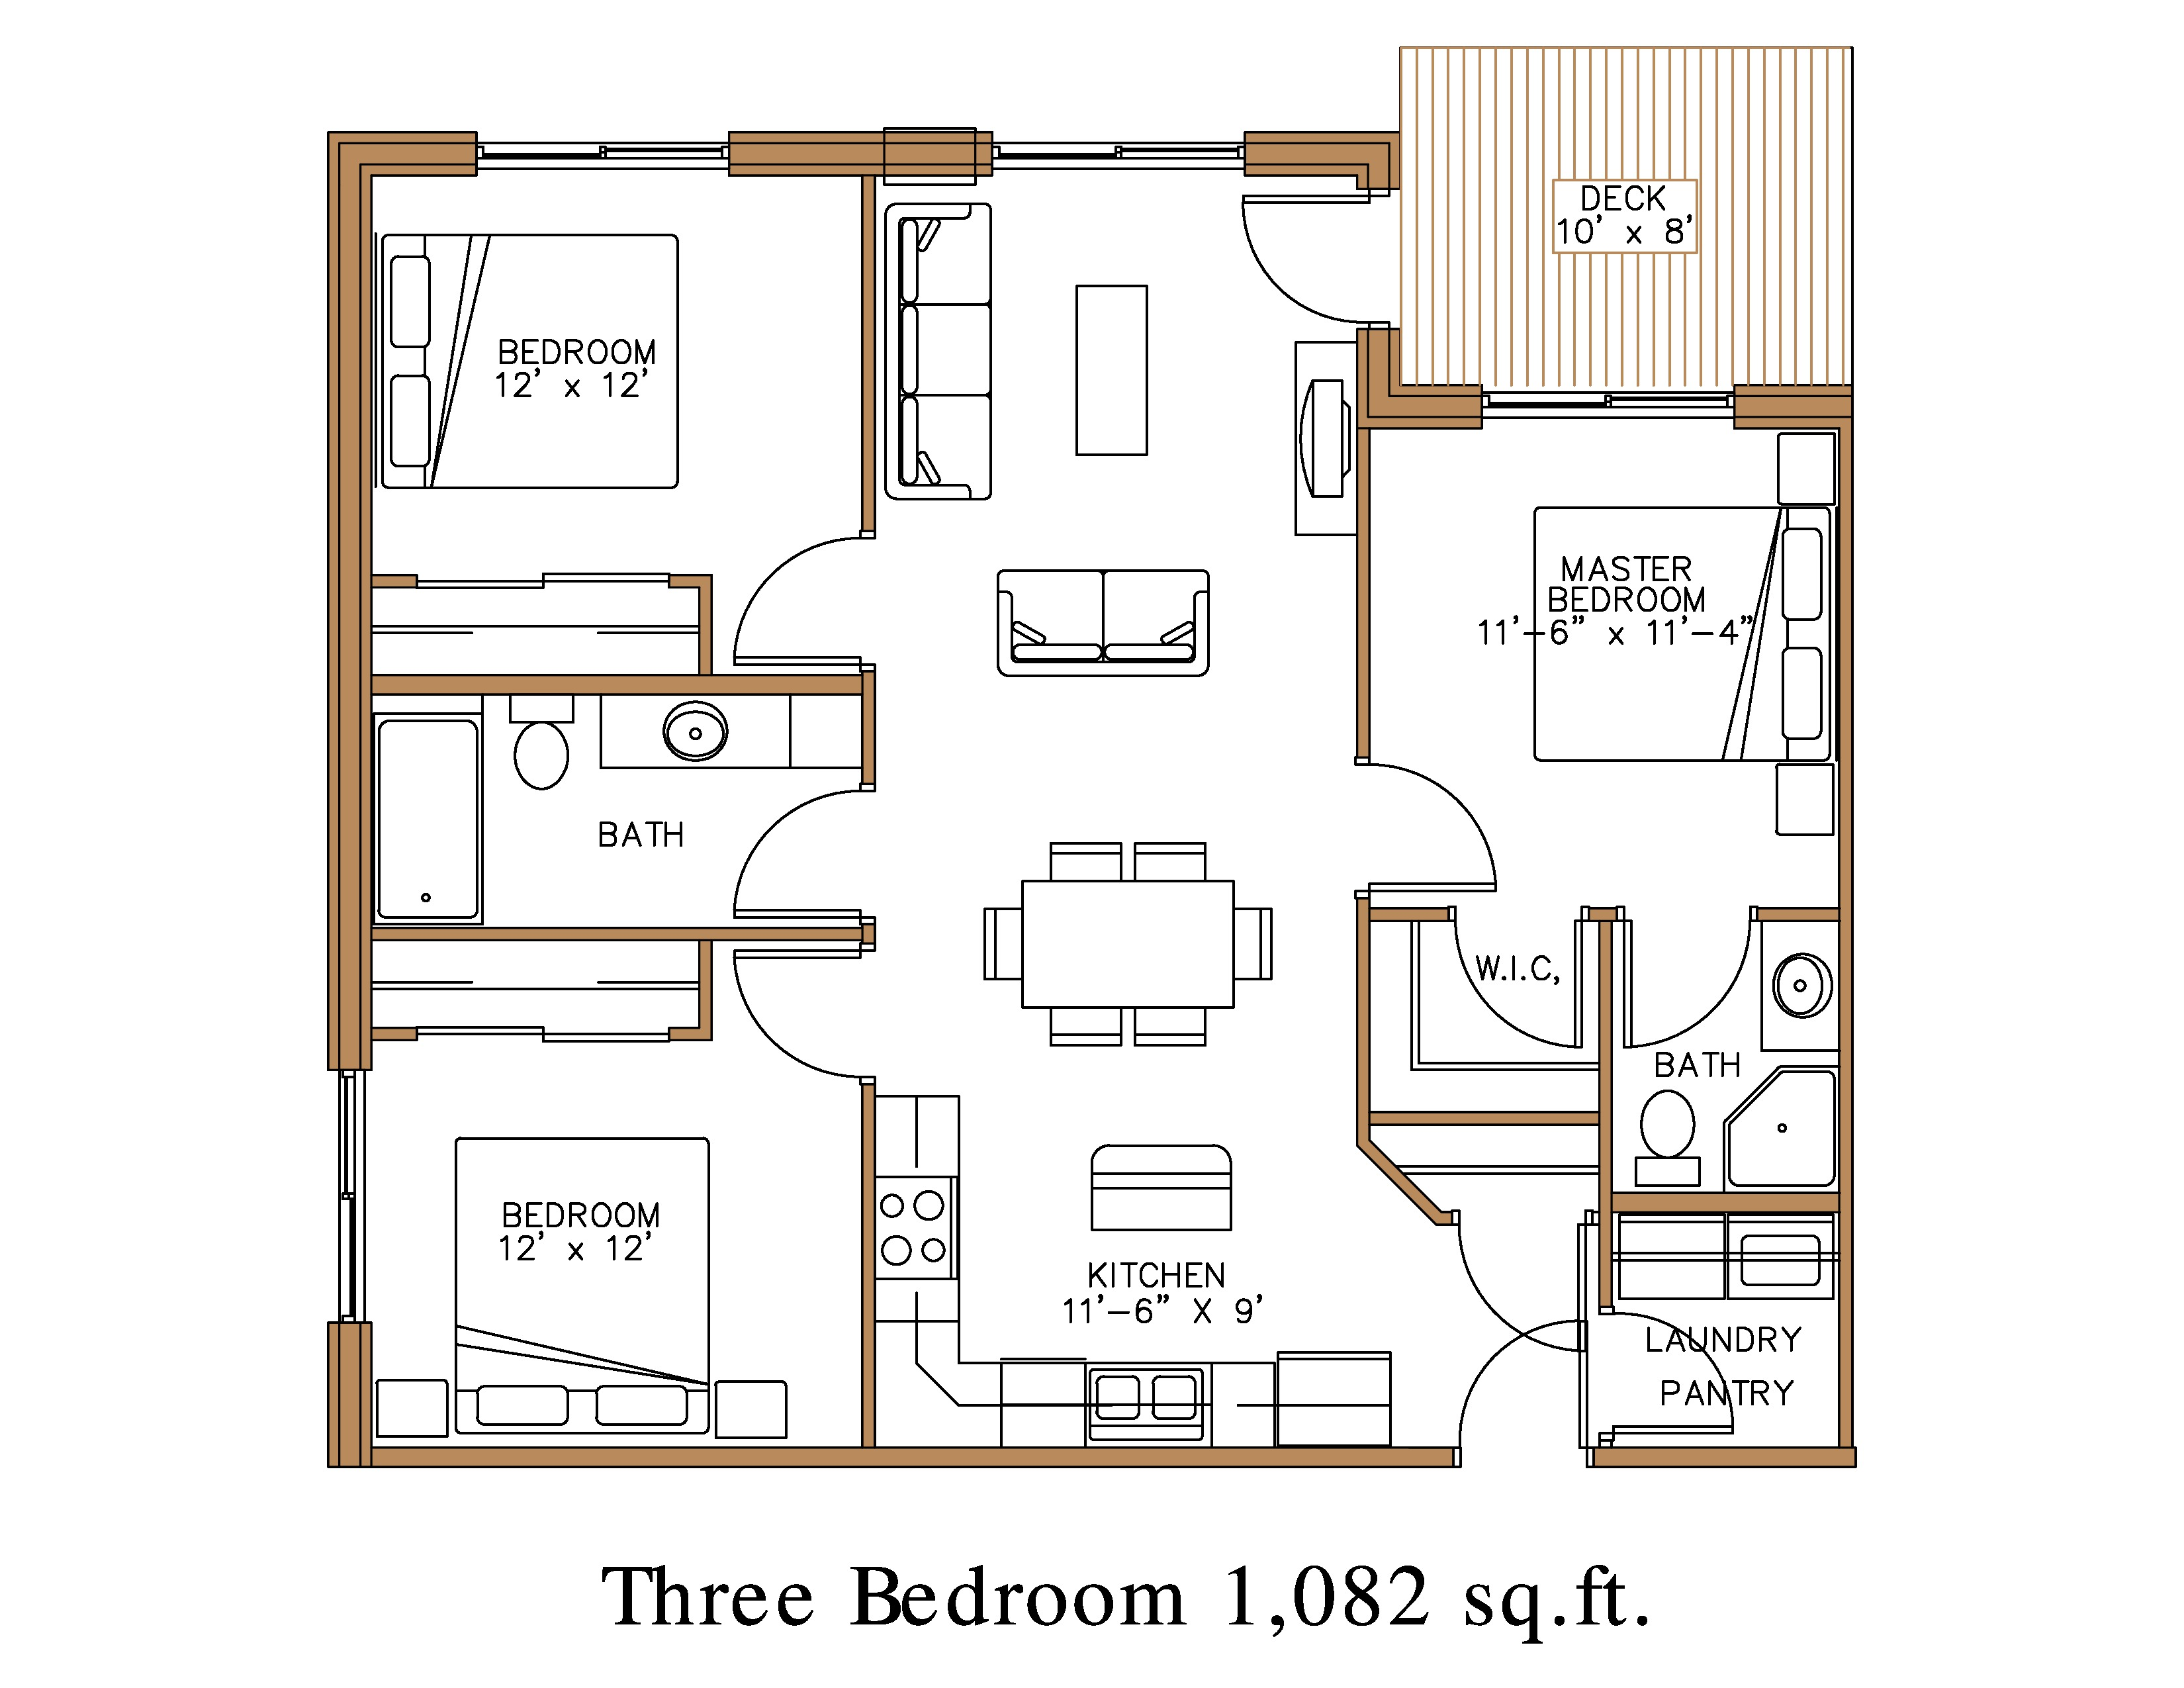 3 Bedroom Apartment Floorplan Floor Plan At Northview Apartment Homes In Detroit Lakes Great